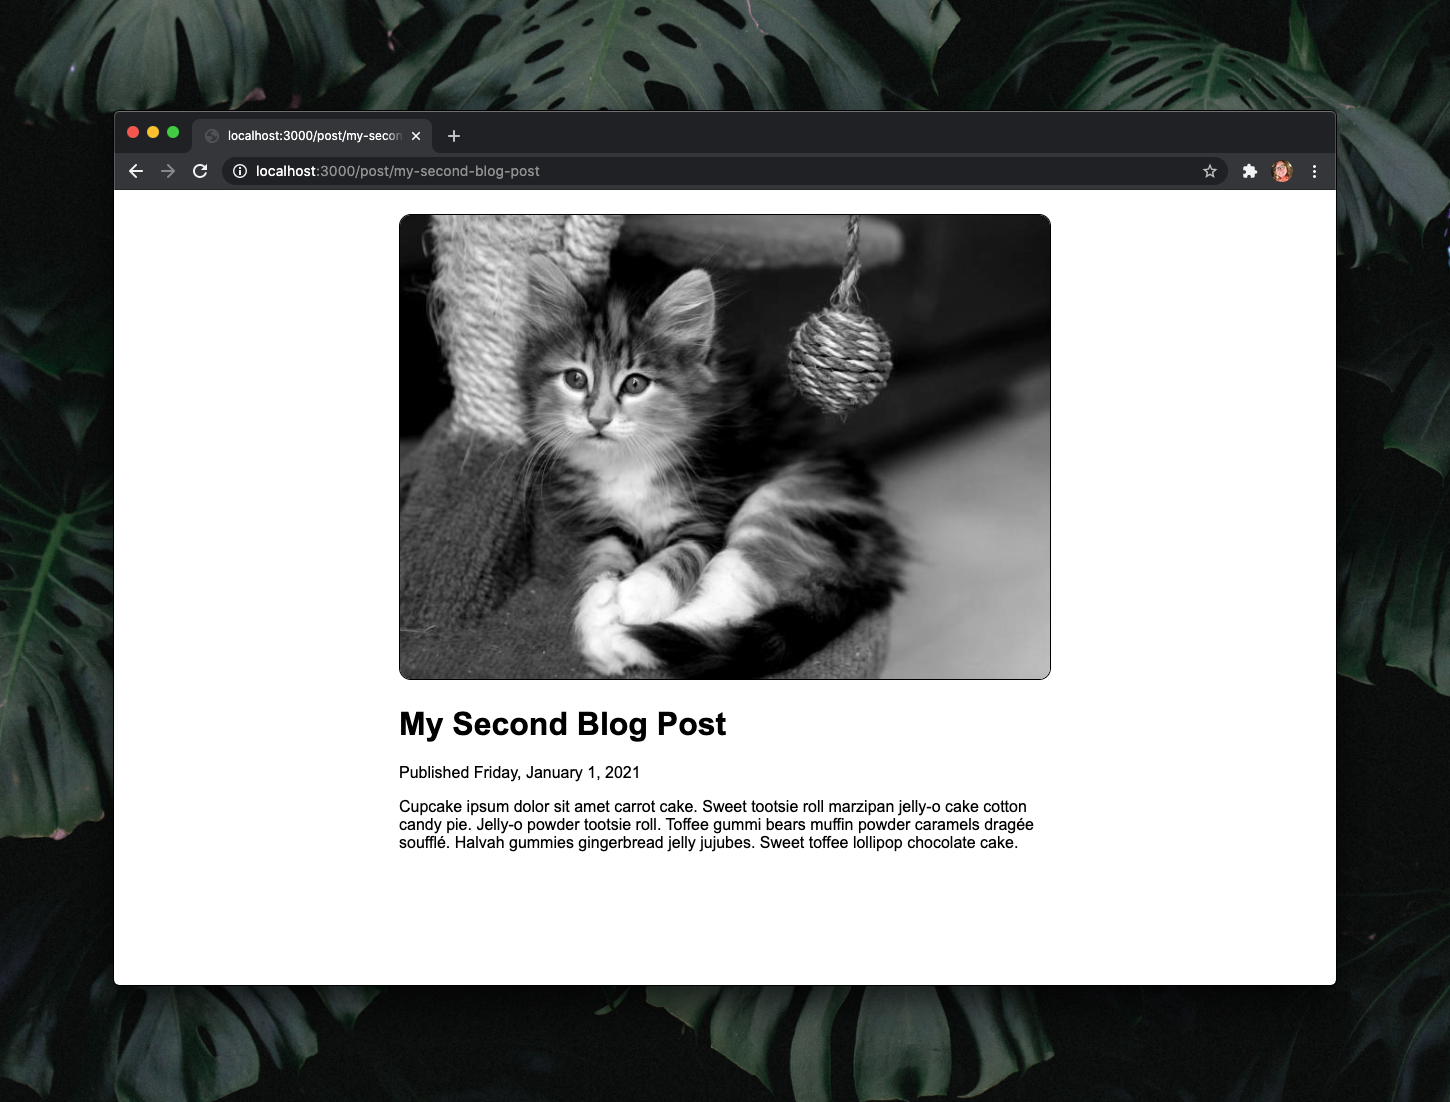 Webpage showing a black and white image of a random cat from PlaceKitten.com, the blog post title in bold font, the publish date, and the post content.